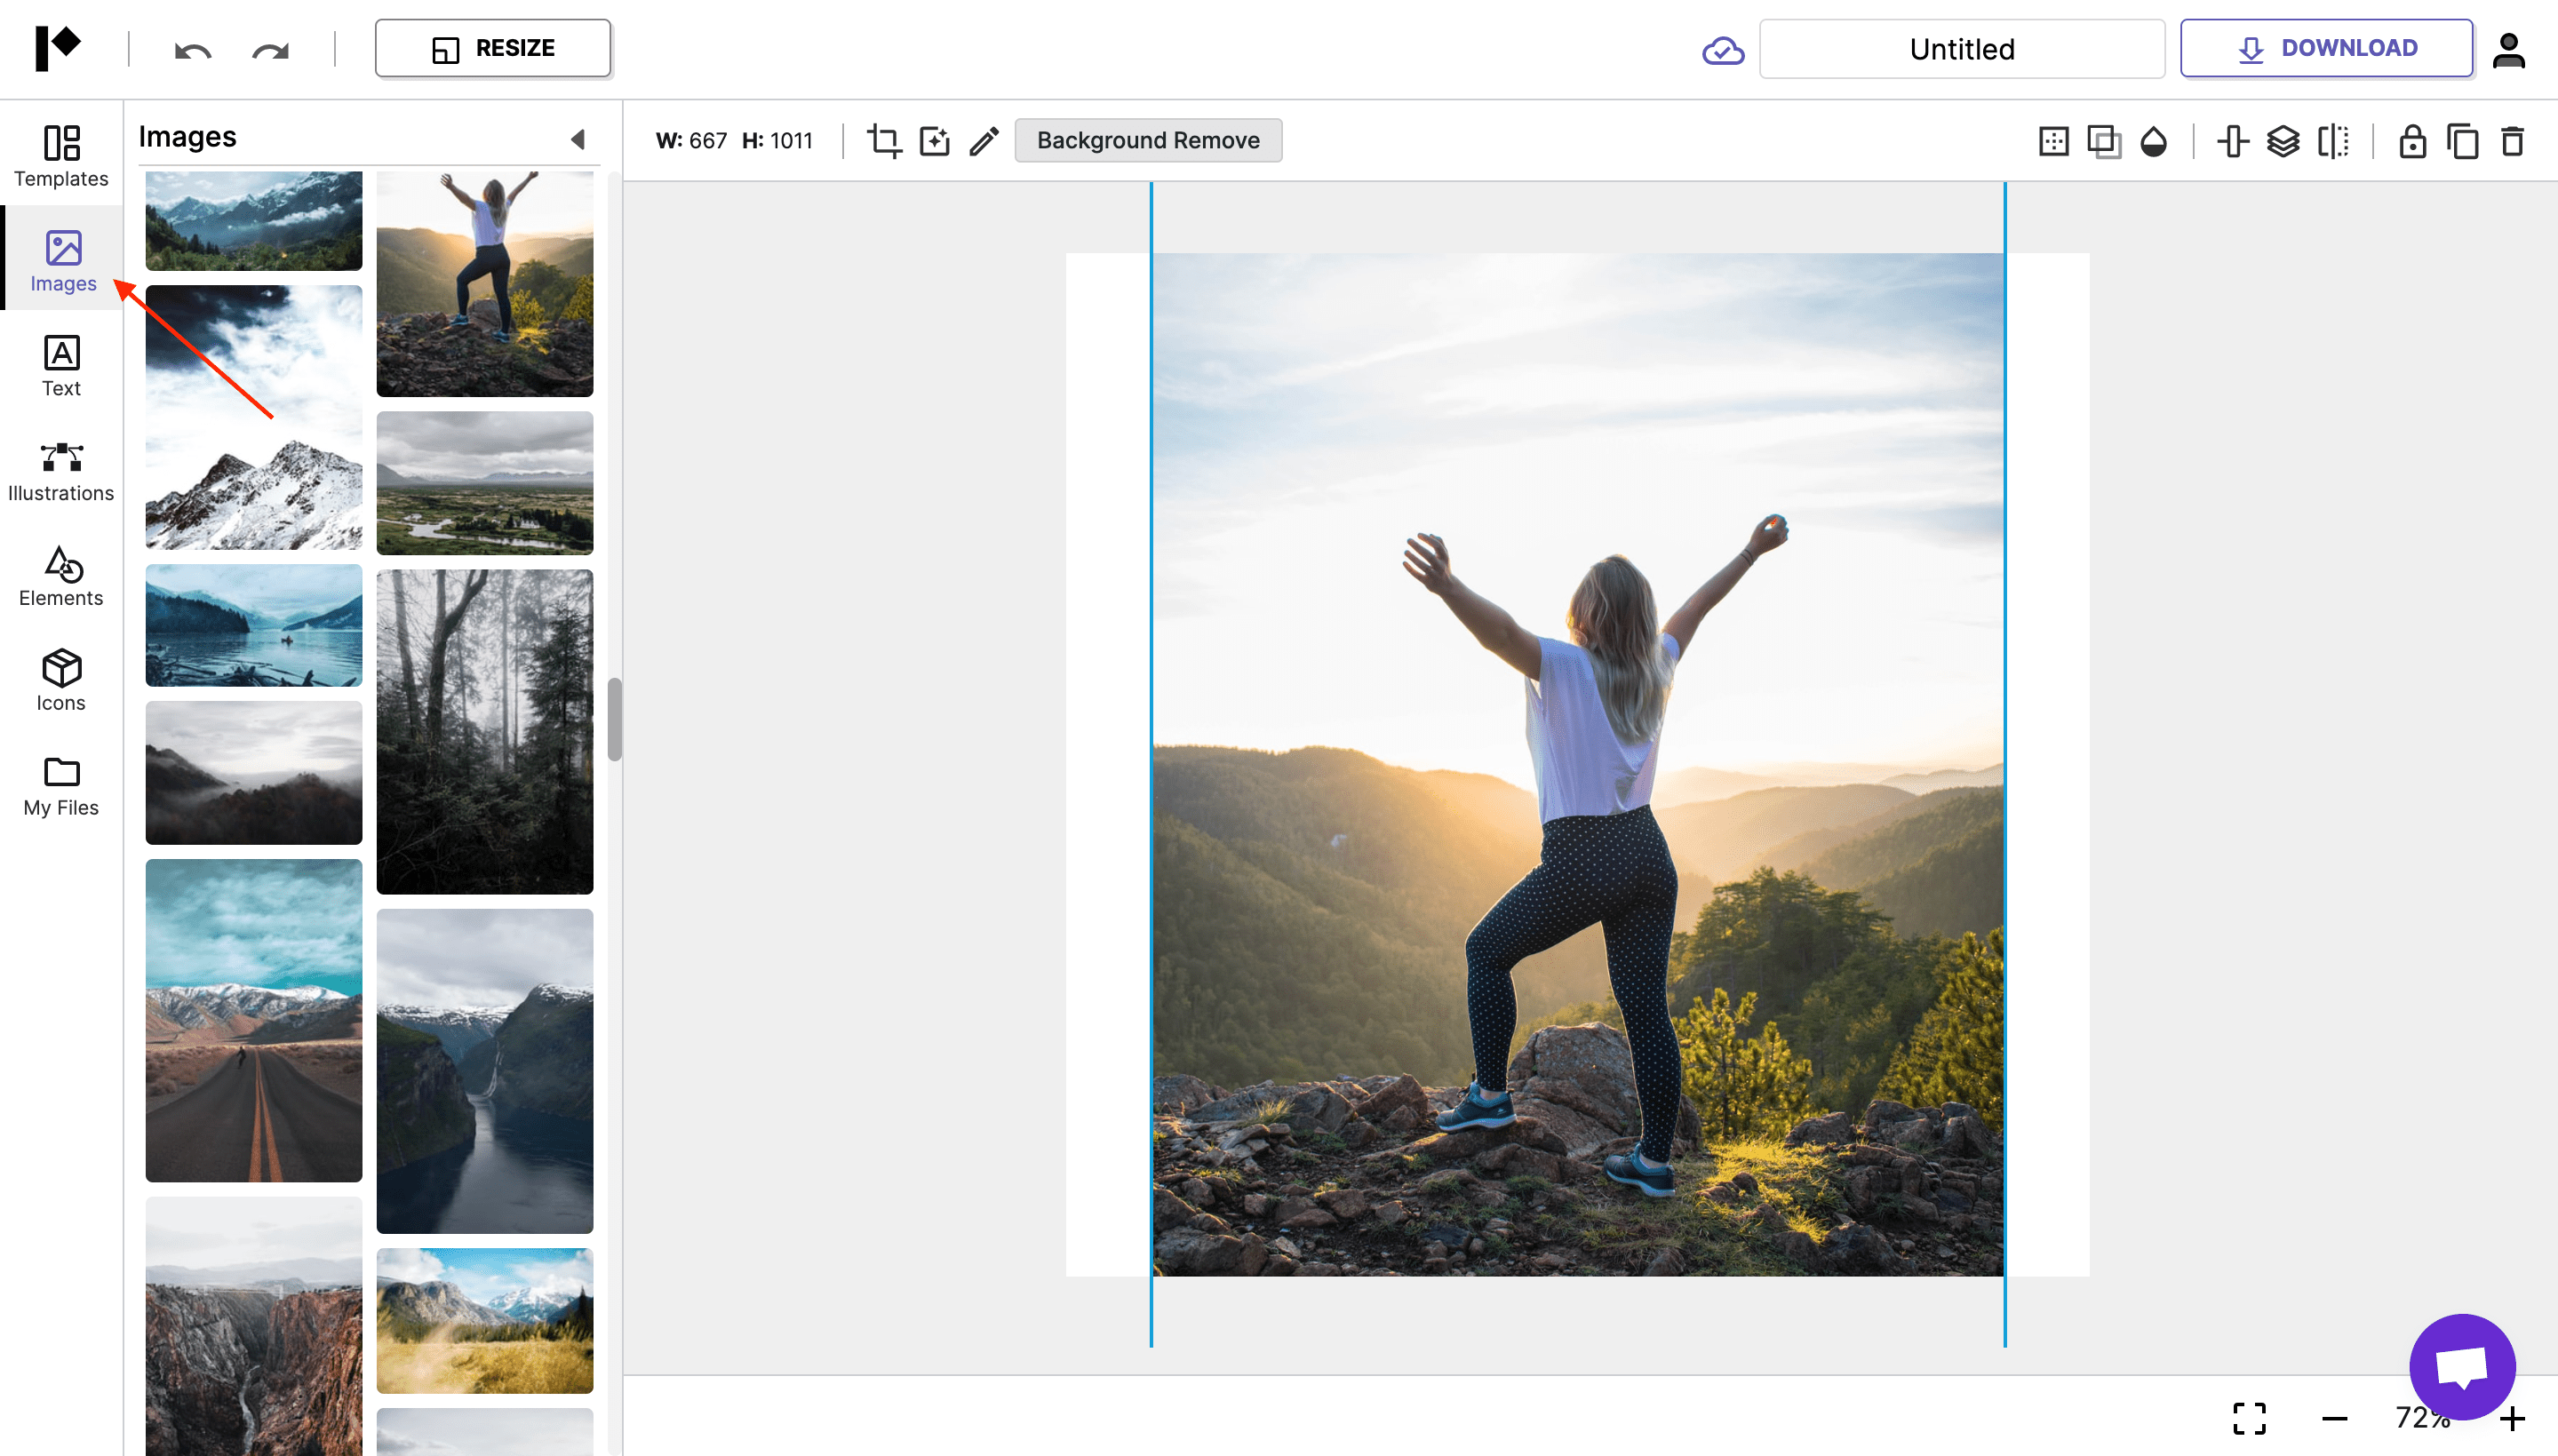 Pixelied editor images